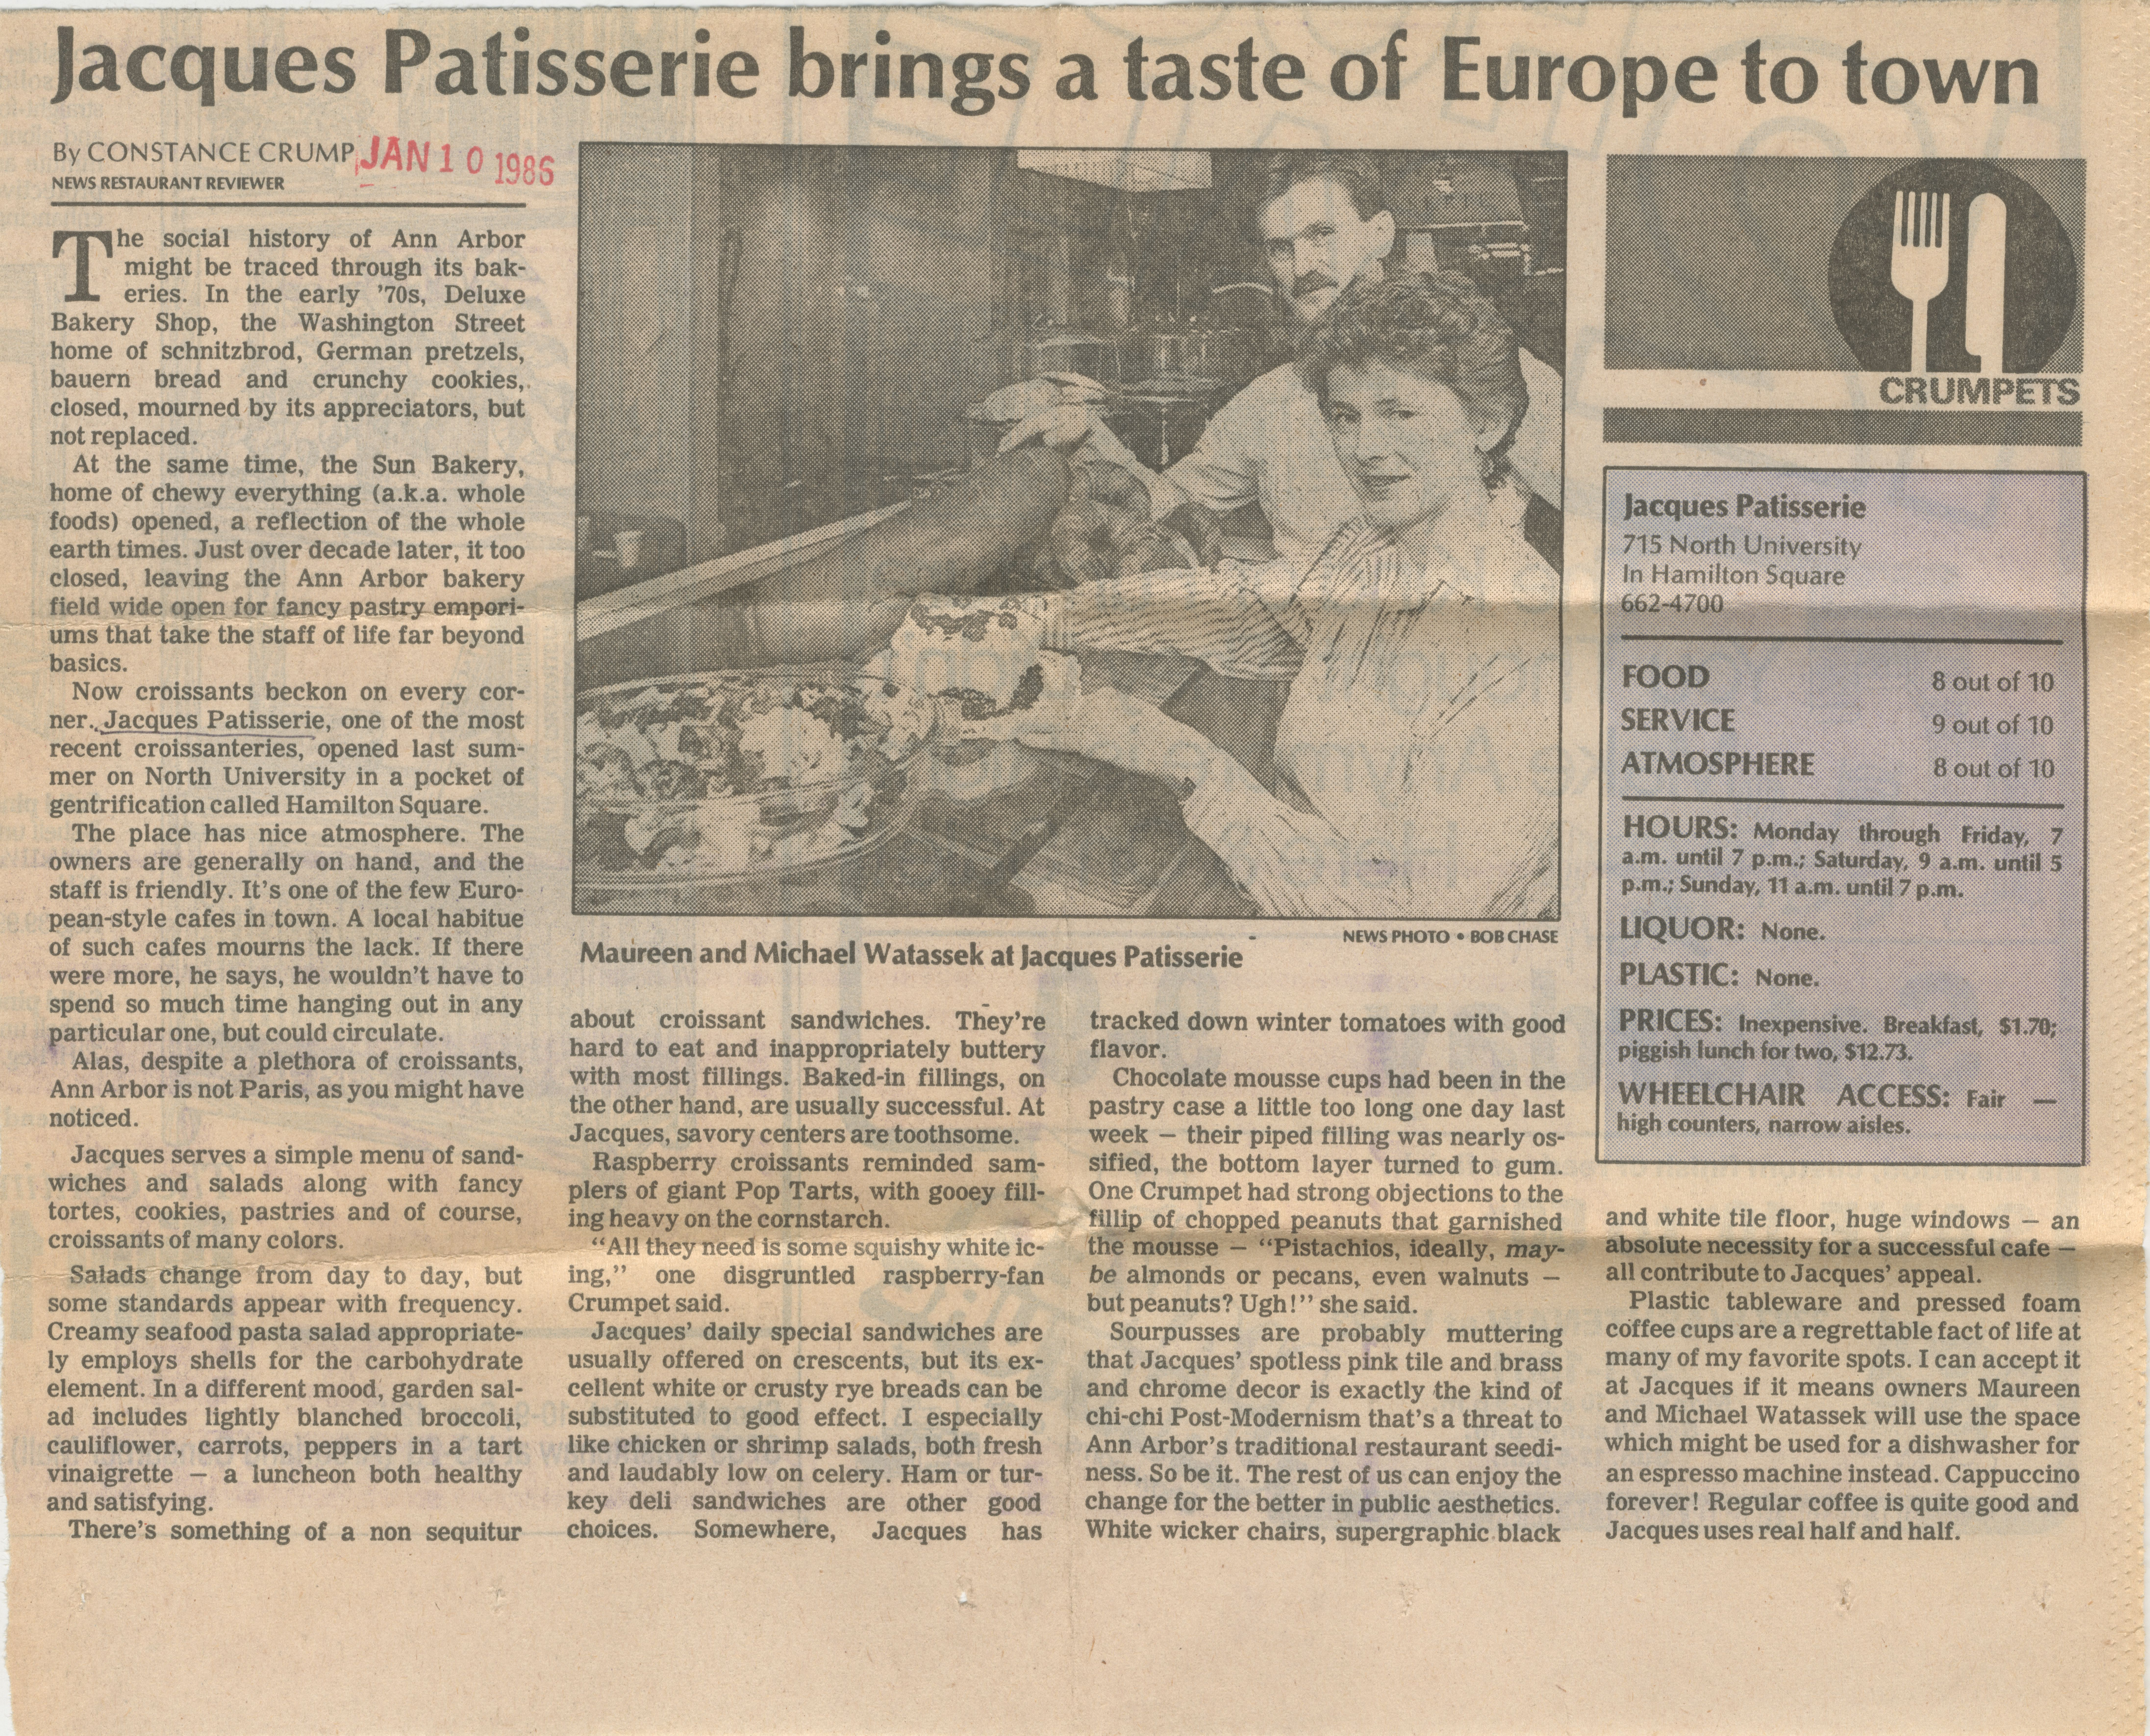 Jacques Patisserie Brings A Taste Of Europe To Town image